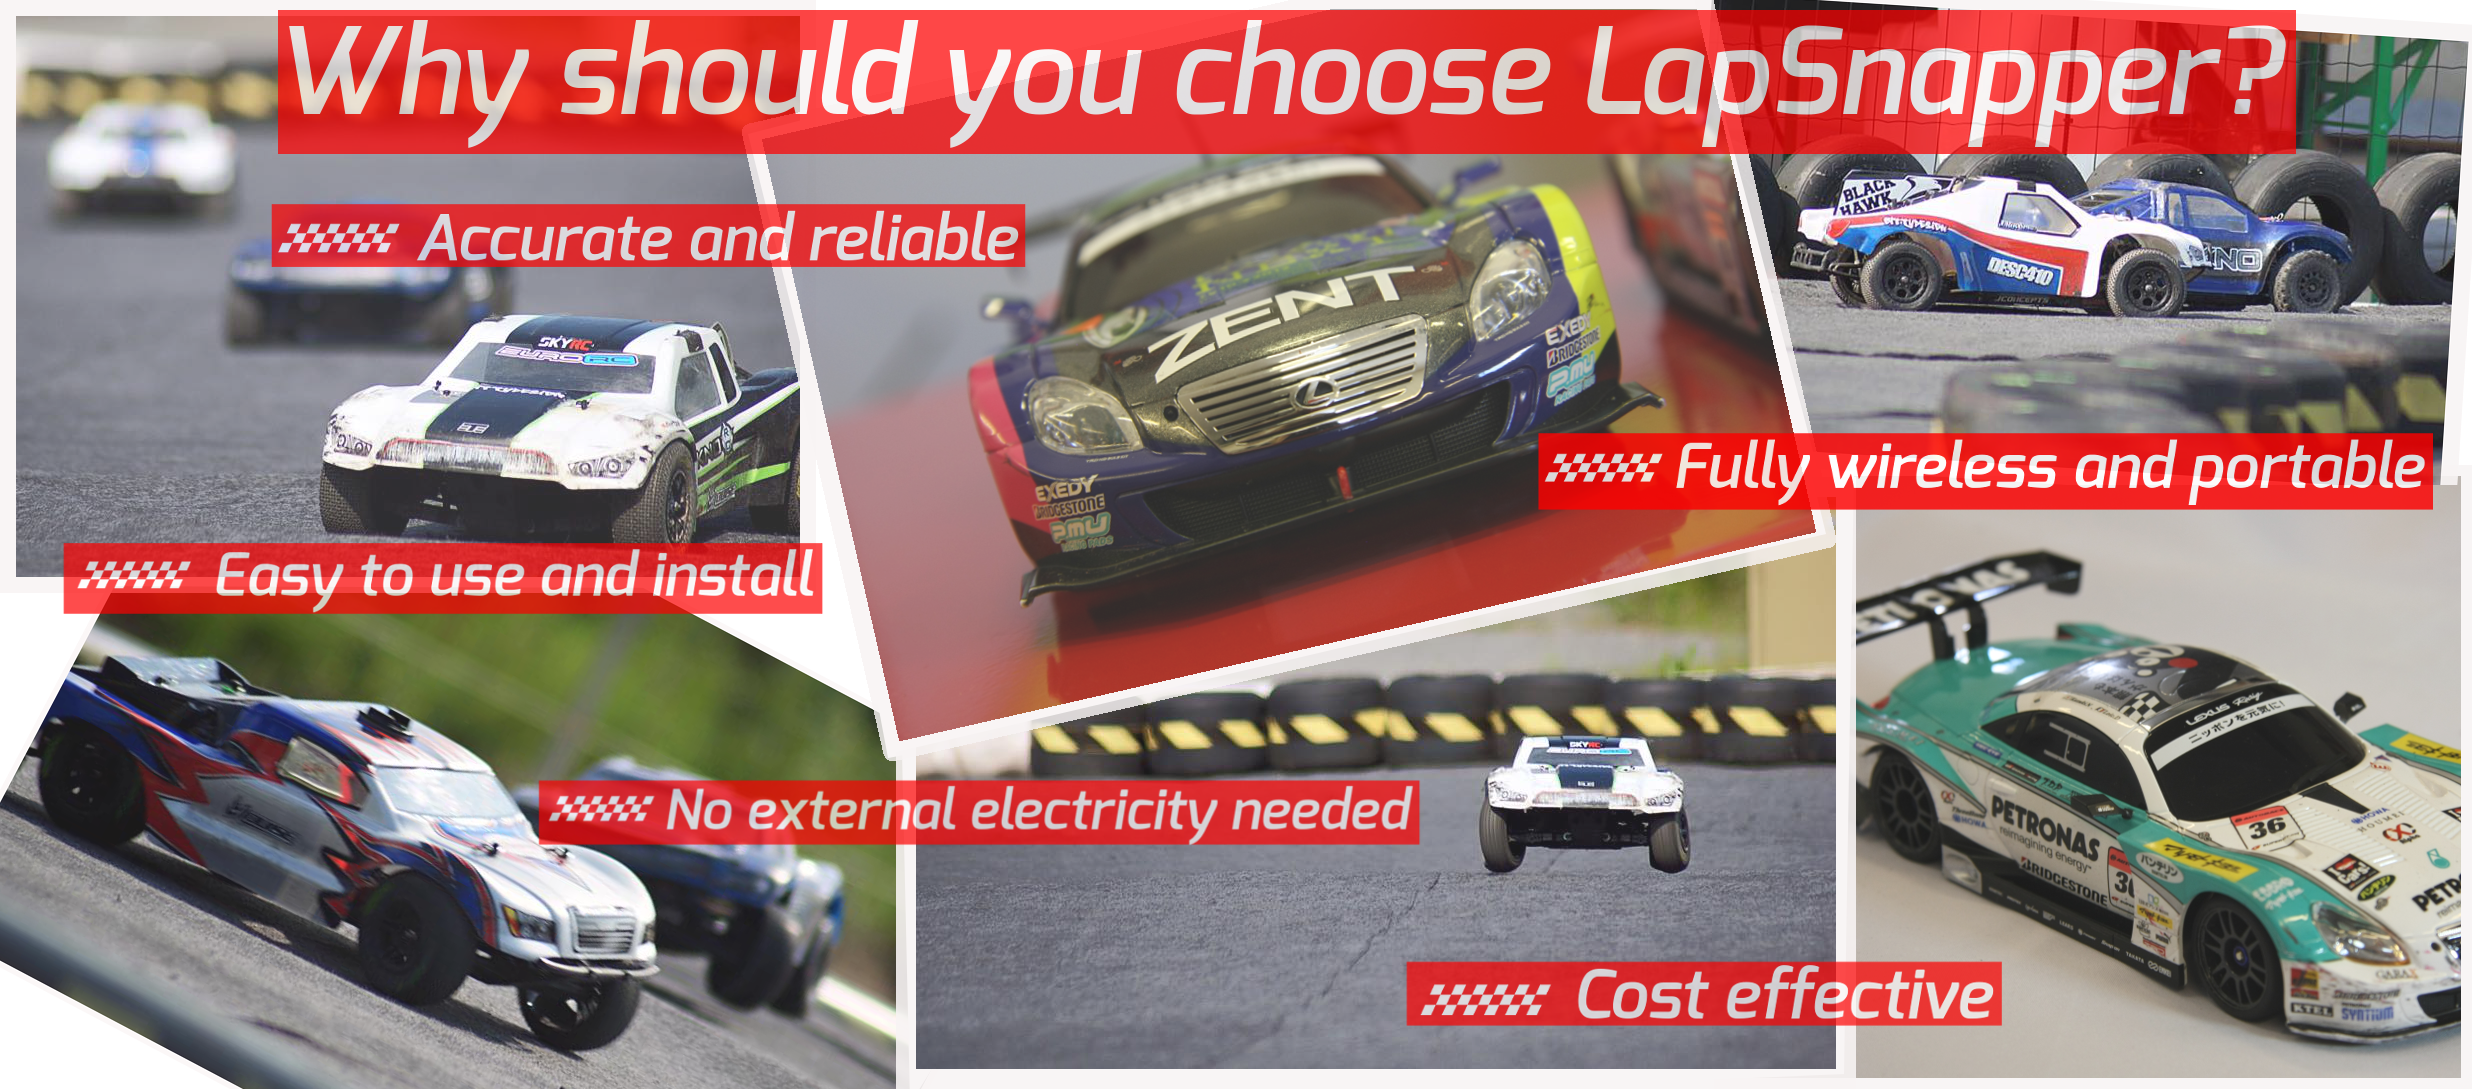 Why should you choose the LapSnapper